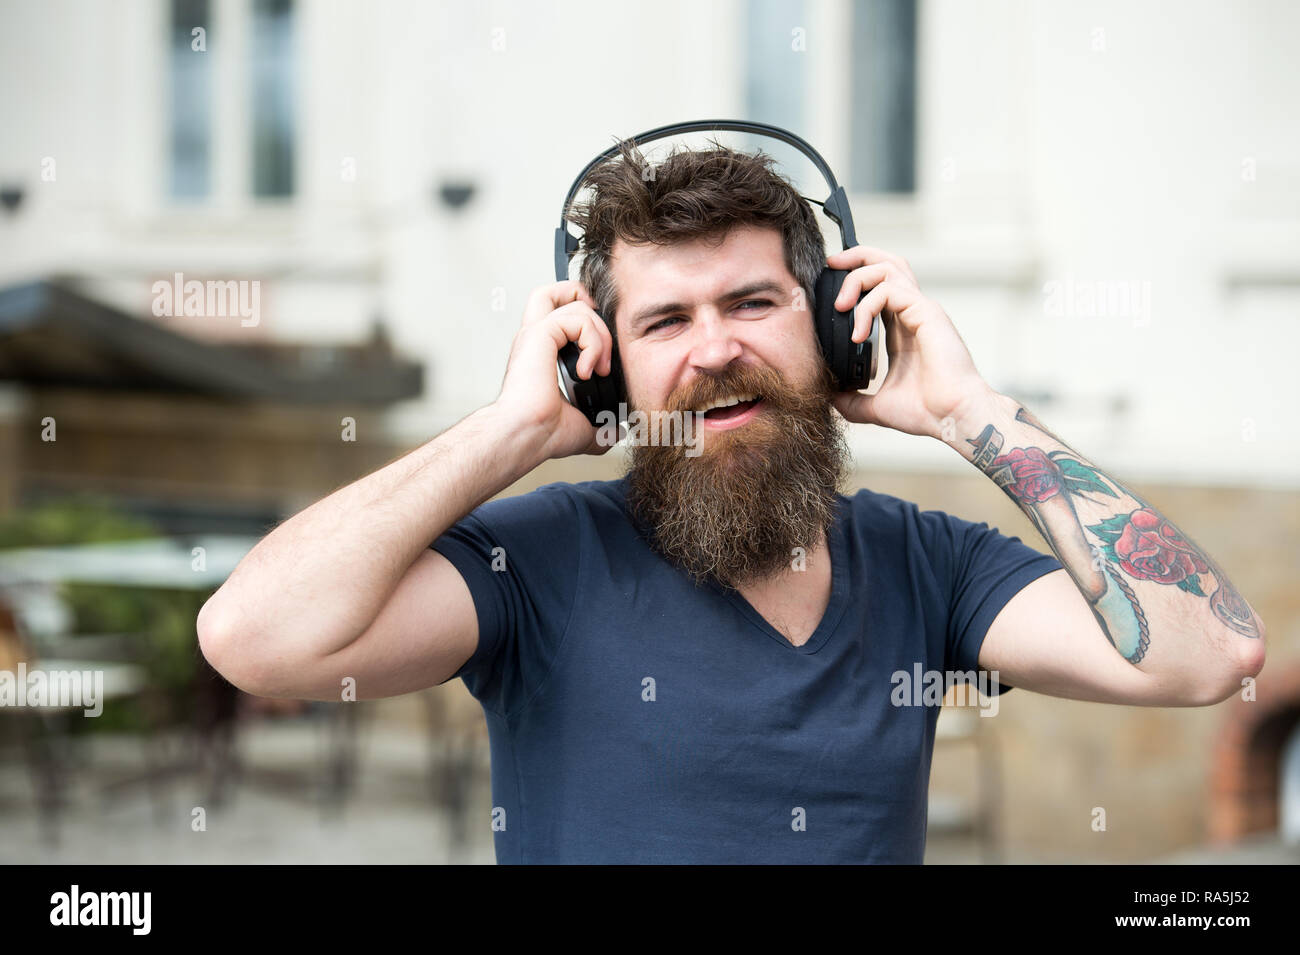 Man bearded hipster with headphones listening music. Hipster enjoy high quality sound of song in headphones. Get music subscription. Enjoy free songs everyday. Excellent music in his playlist. - Stock Image